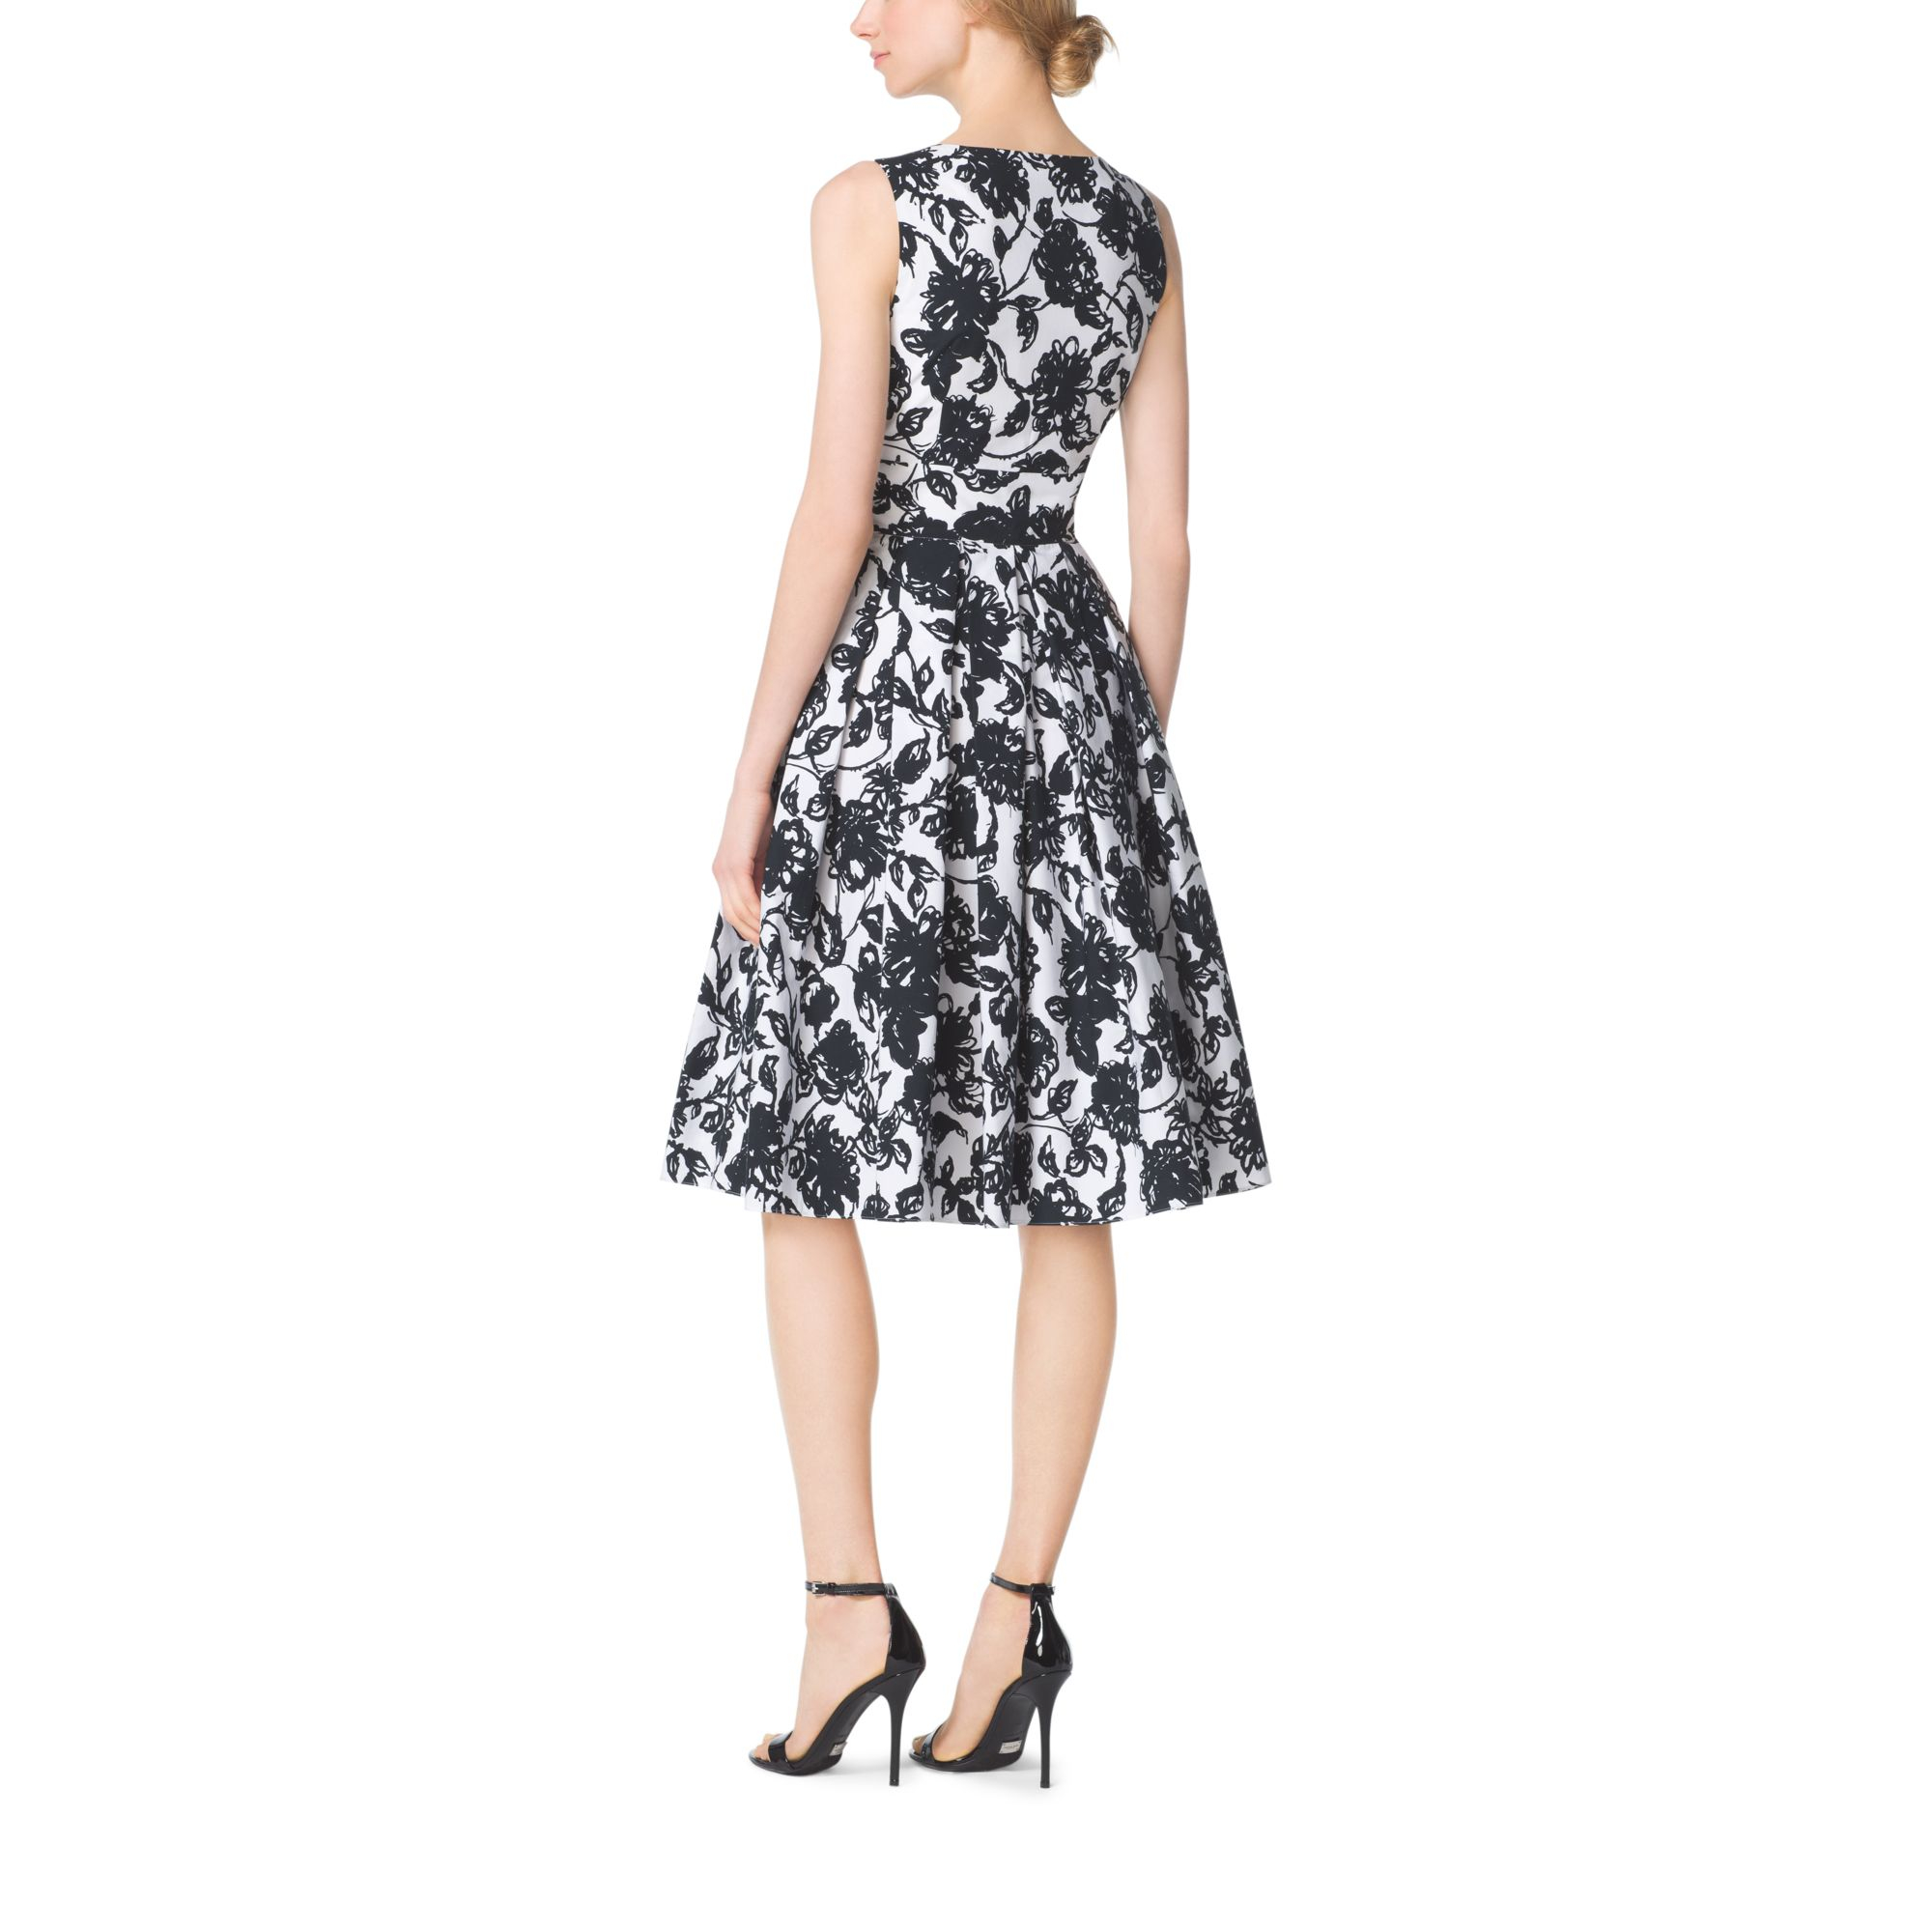 Michael Kors Laukut Pori : Michael kors brushstroke floral cotton matelass? dress in